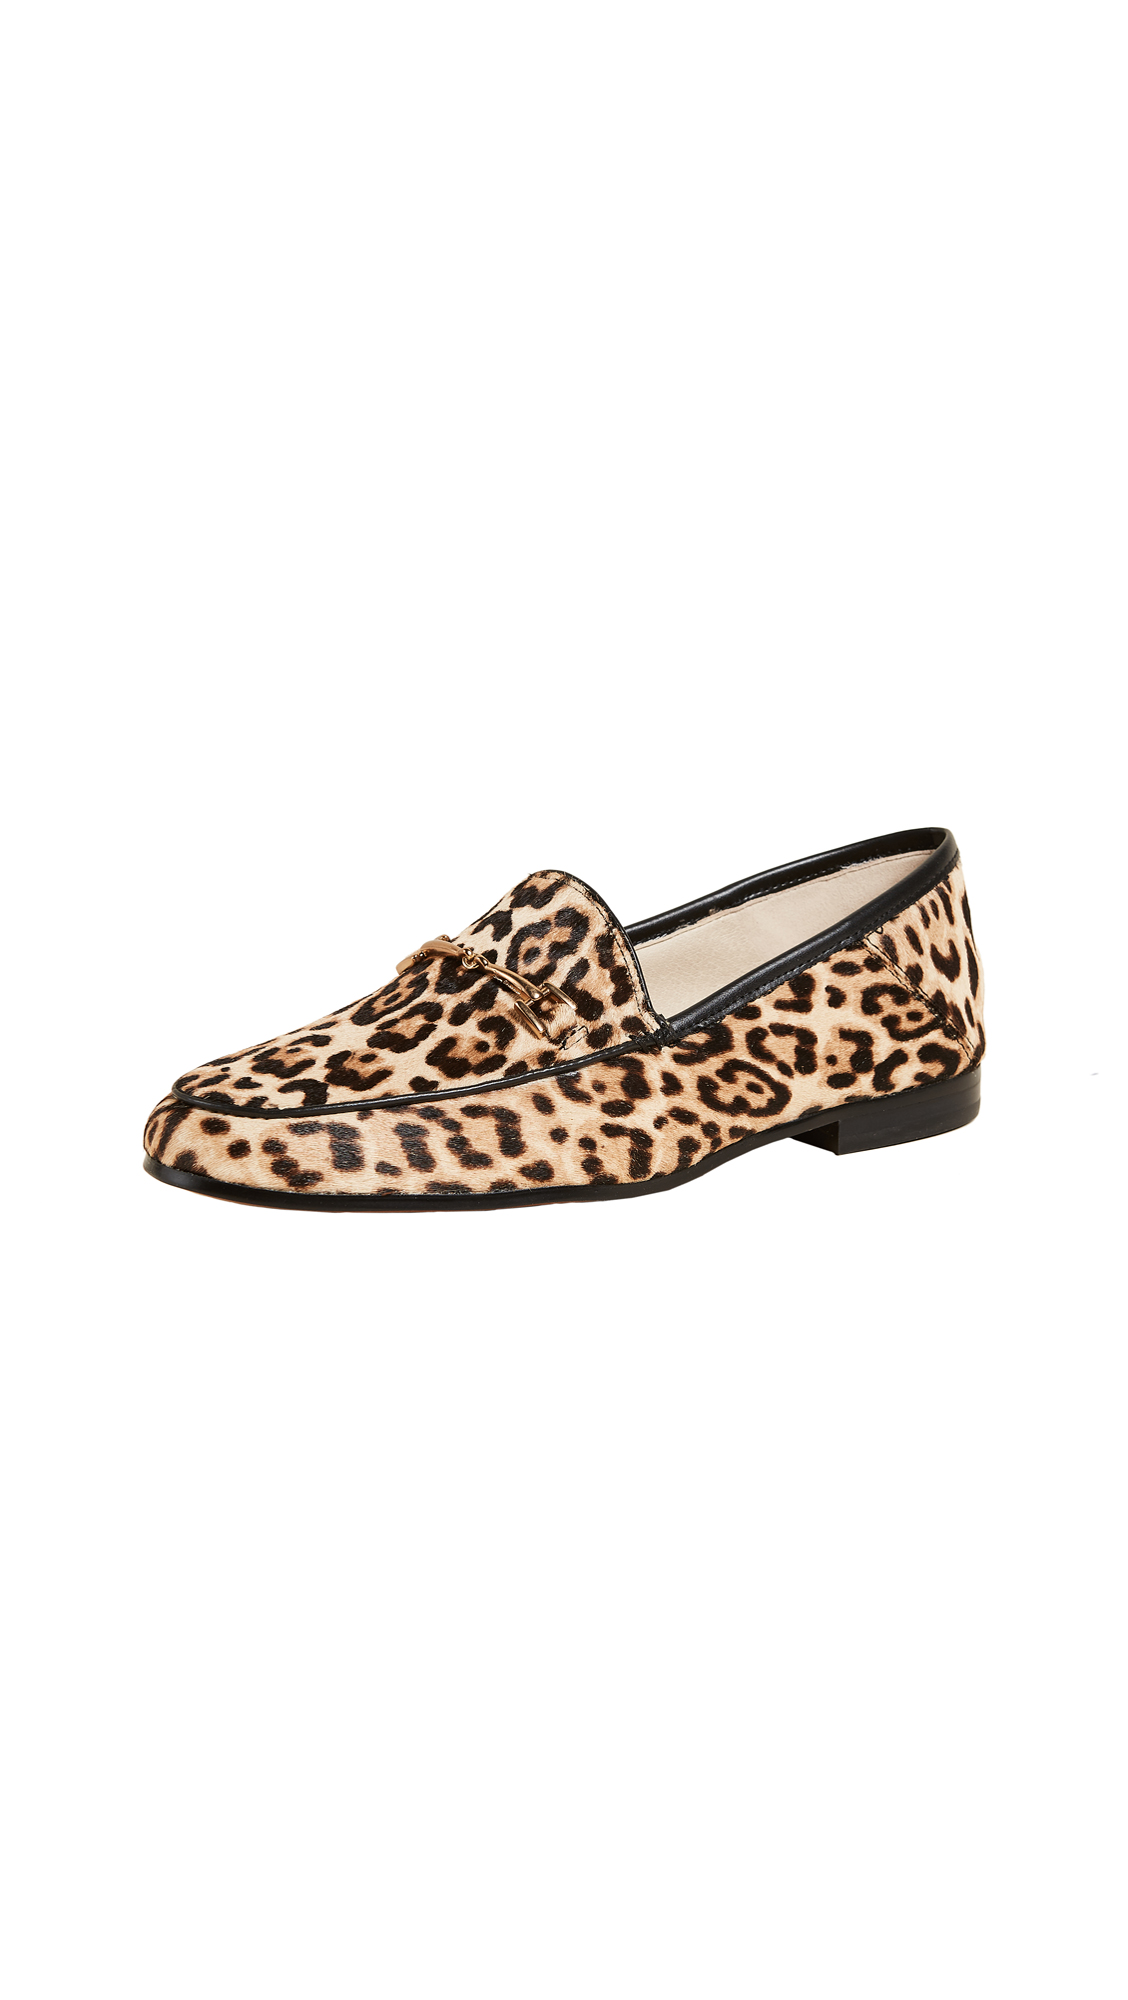 Sam Edelman Loraine Loafers - Sand